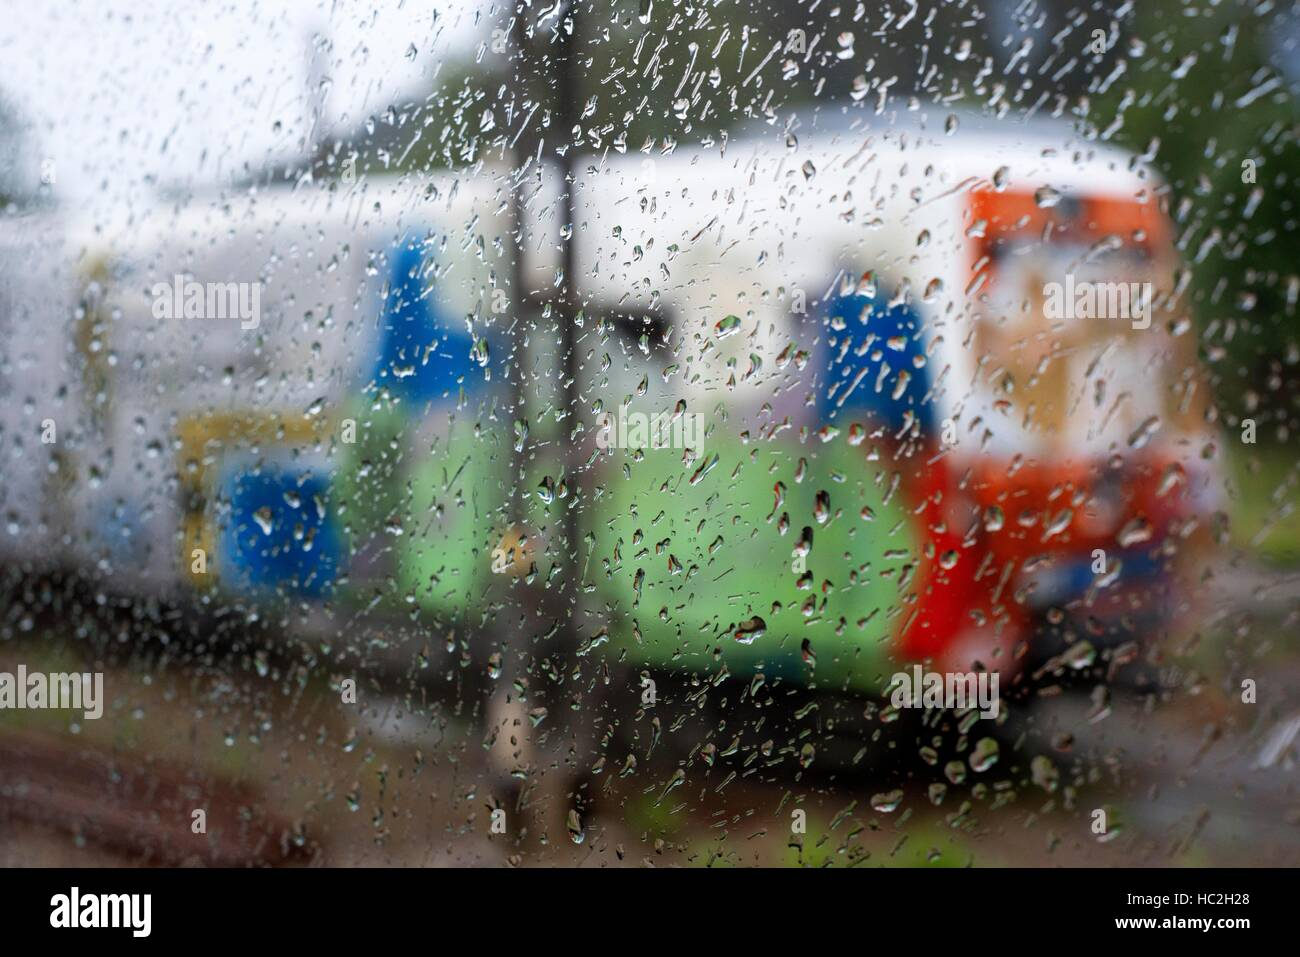 Outside of Transcantabrico Gran Lujo luxury train travellong across northern Spain, Europe. Old train from the windows. - Stock Image